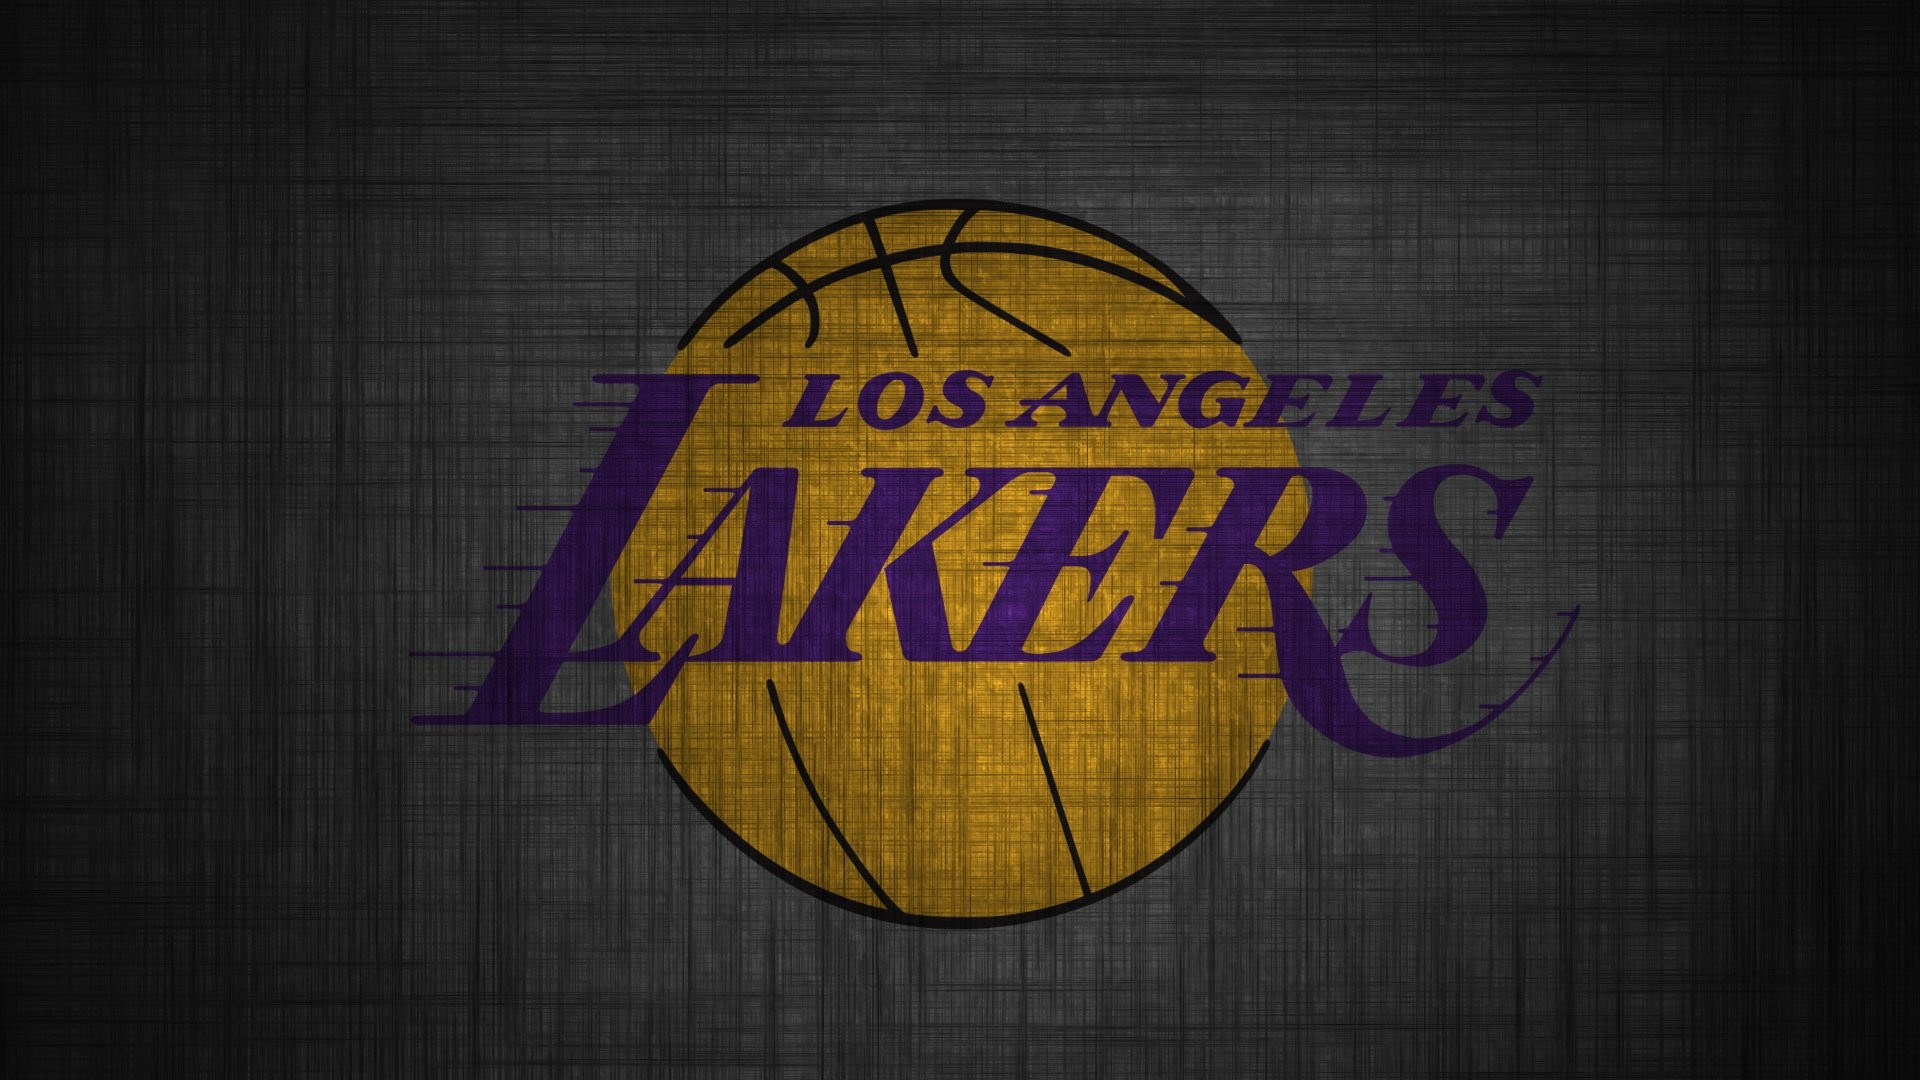 Lakers Wallpaper Images on   HD Wallpapers   Pinterest   Hd wallpaper and  Wallpaper